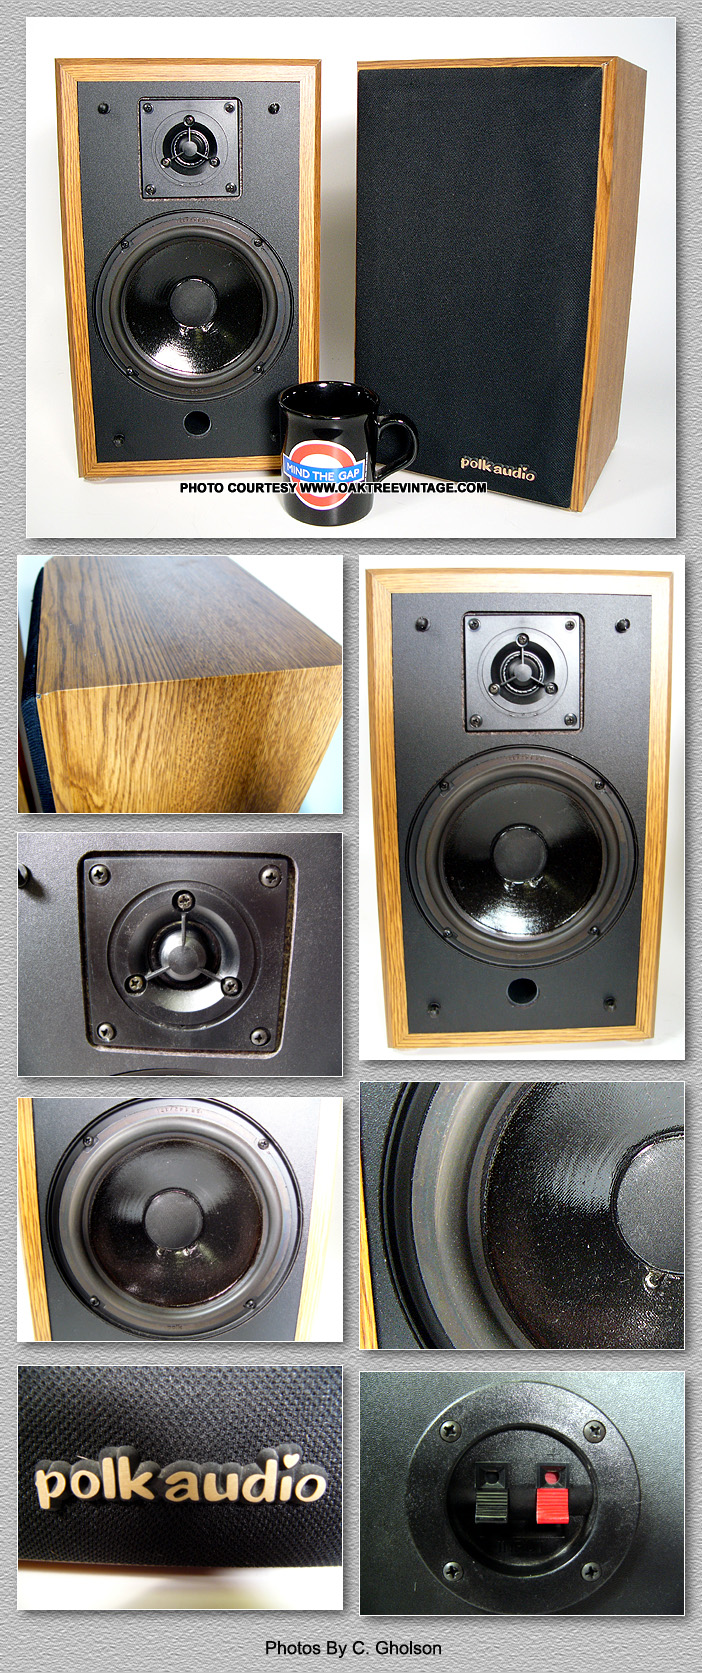 Polk Audio Replacement Speakers Parts Spares For Sale